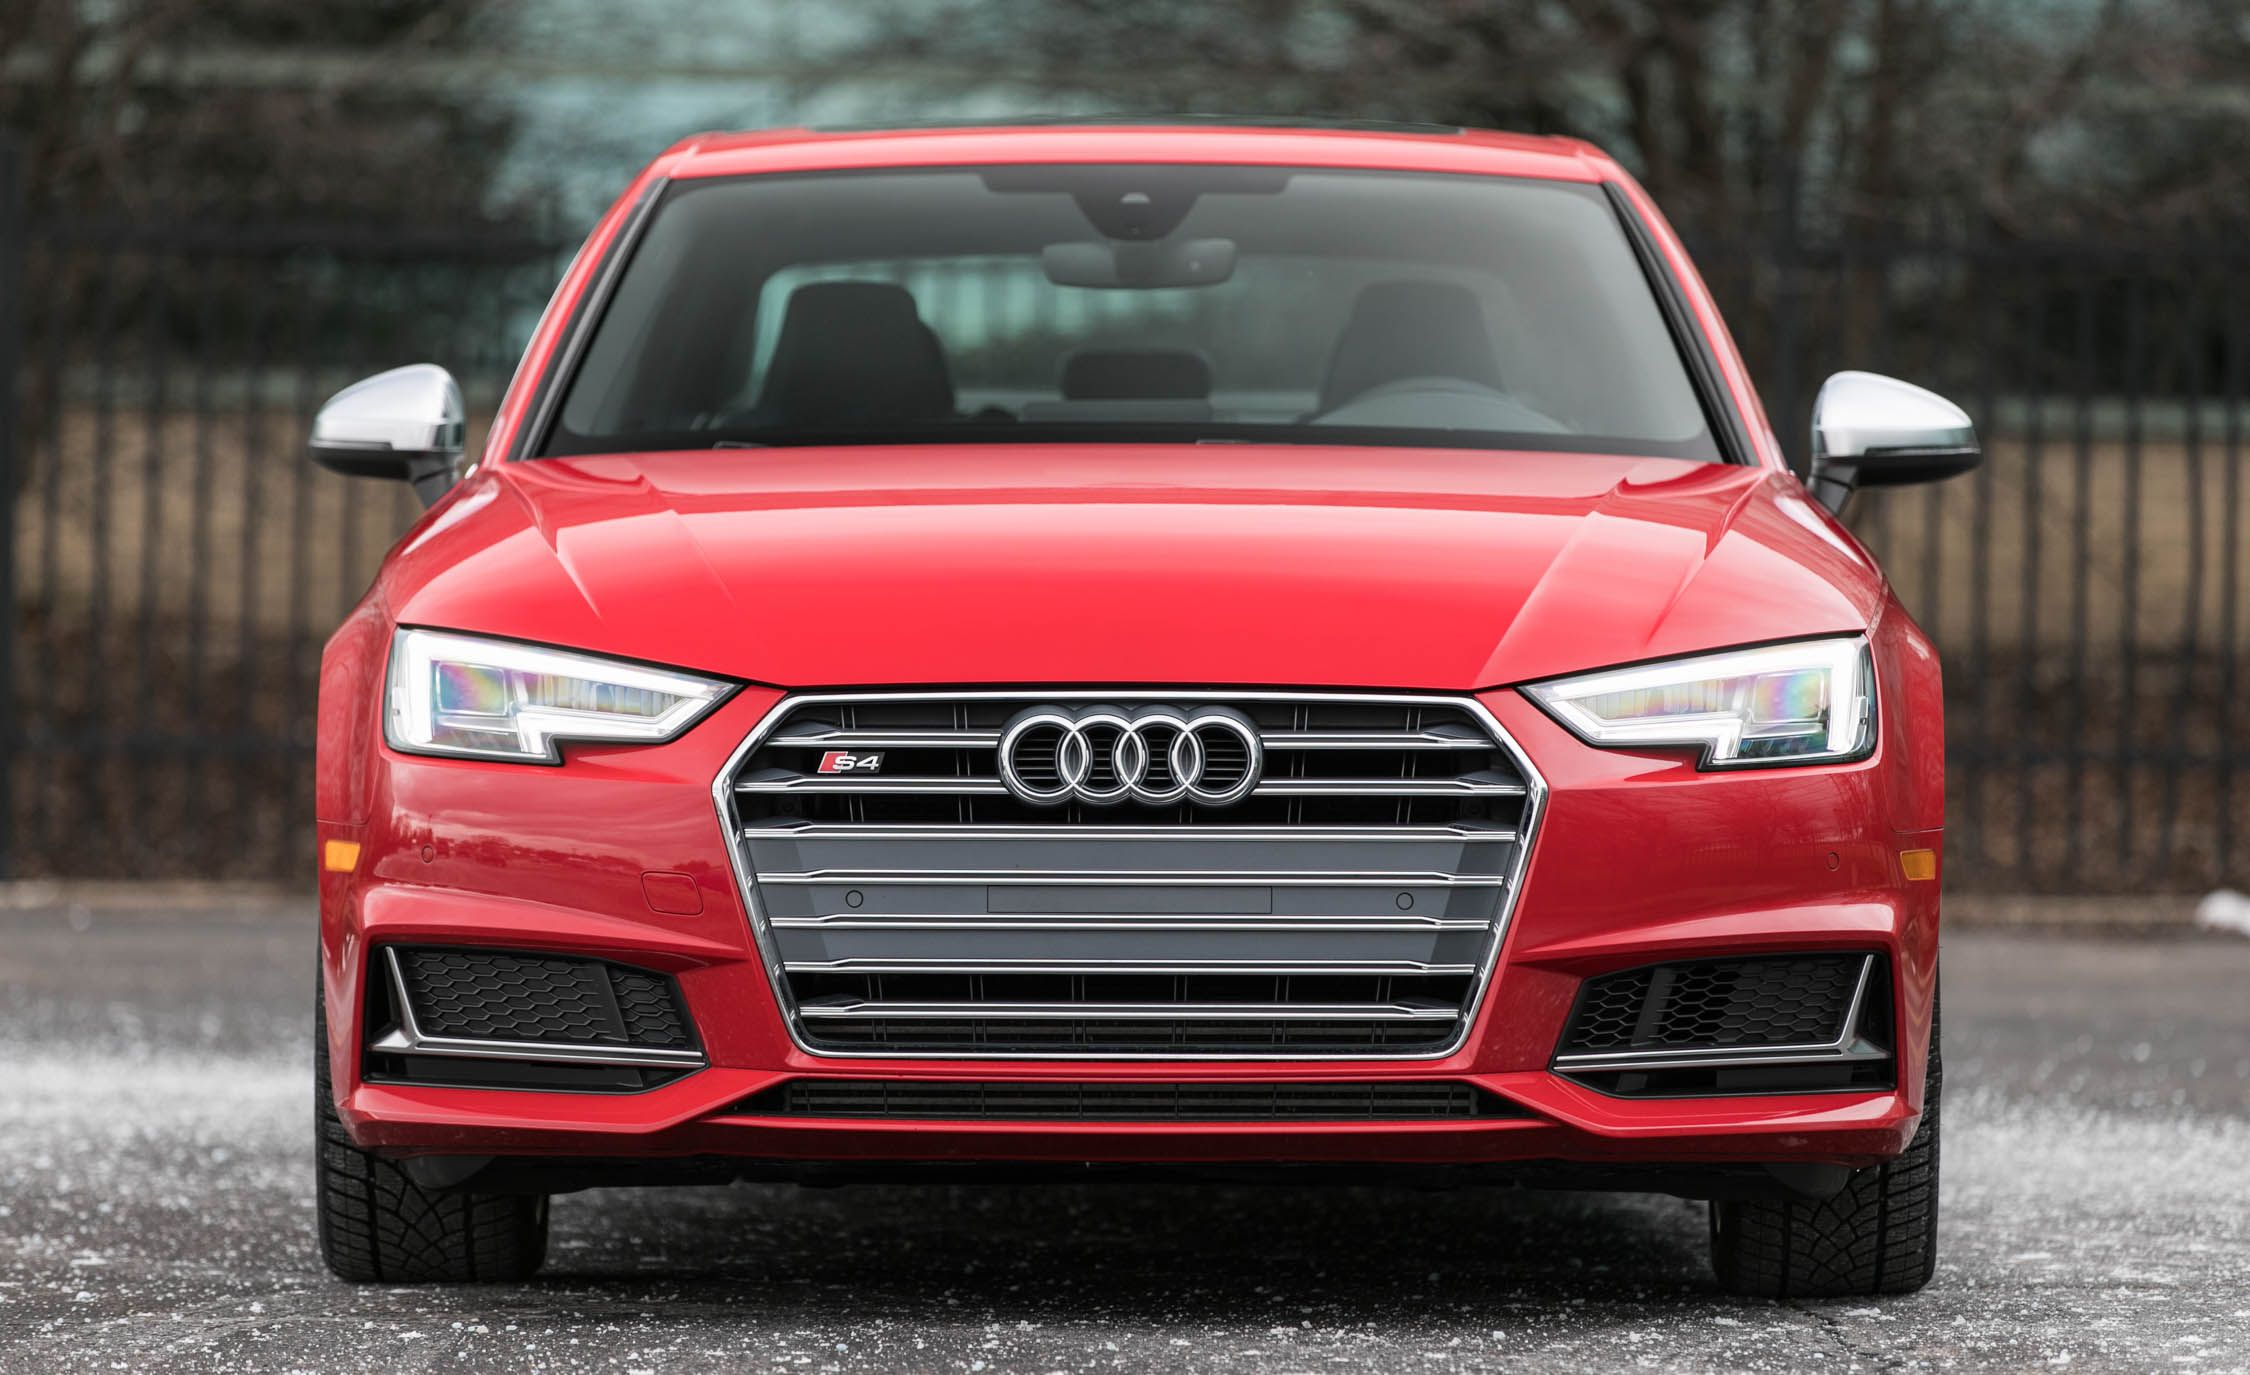 Audi S Reviews Audi S Price Photos And Specs Car And Driver - Audi s4 horsepower